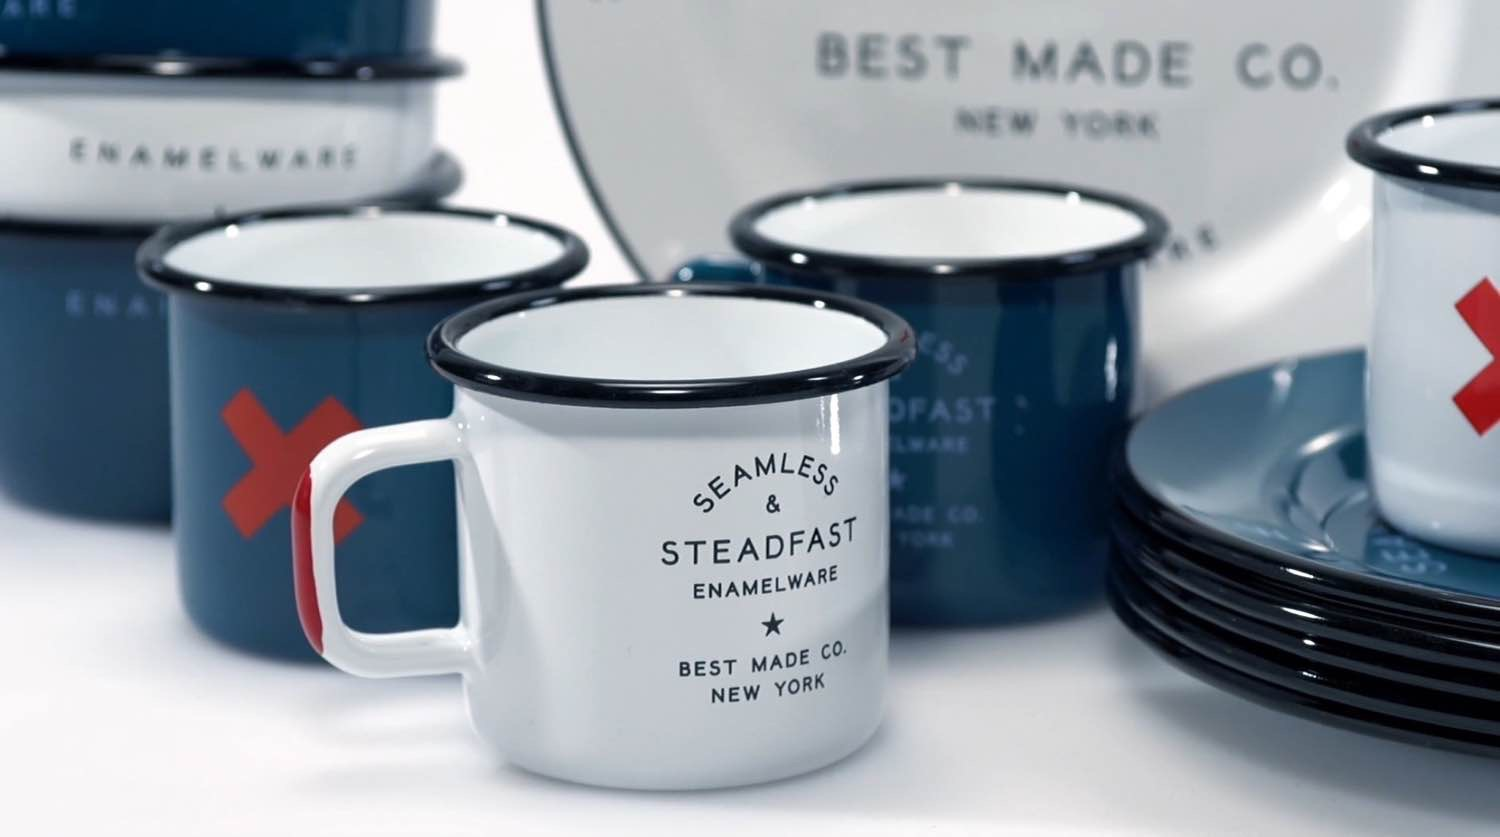 Seamless Enamel Steel Mugs by Best Made Co. ($32 for a set of two, in blue or white)